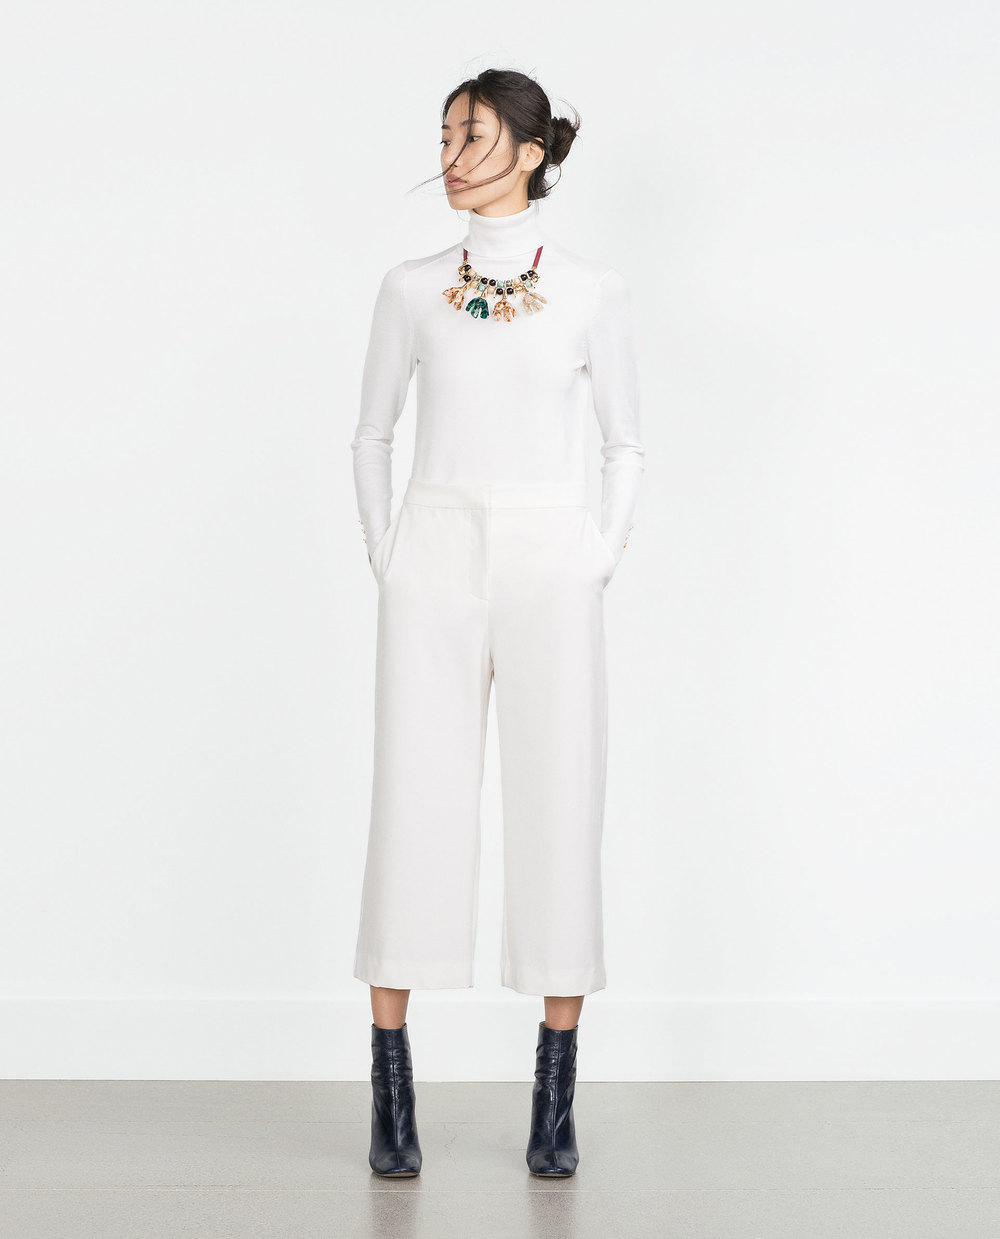 Ecru Straight Cut Trousers. Zara. $39.